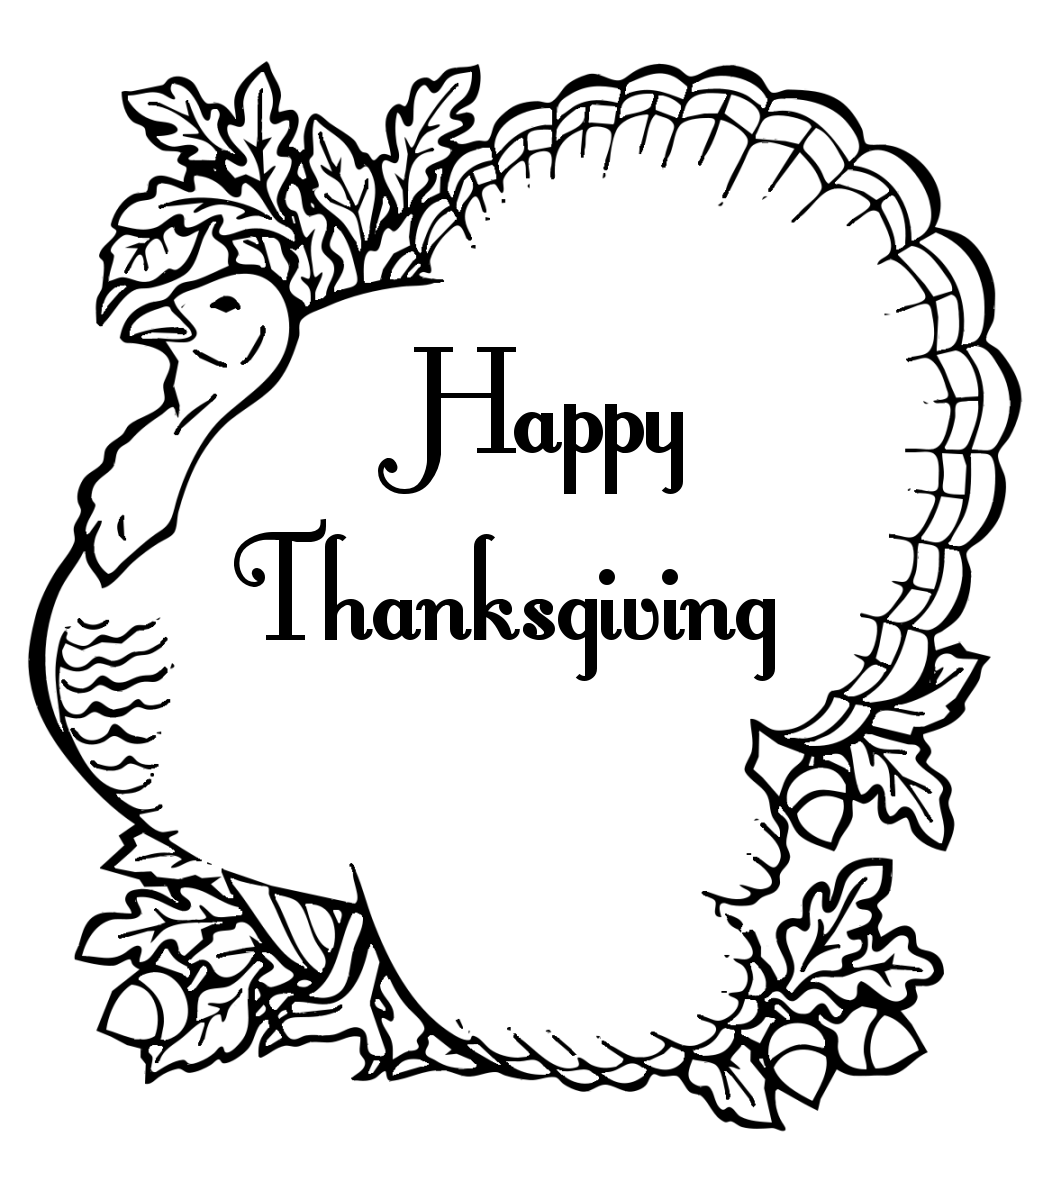 Free Printable Thanksgiving Coloring Pages For Kids Thanksgiving Coloring Pages Thanksgiving Clip Art Thanksgiving Coloring Sheets